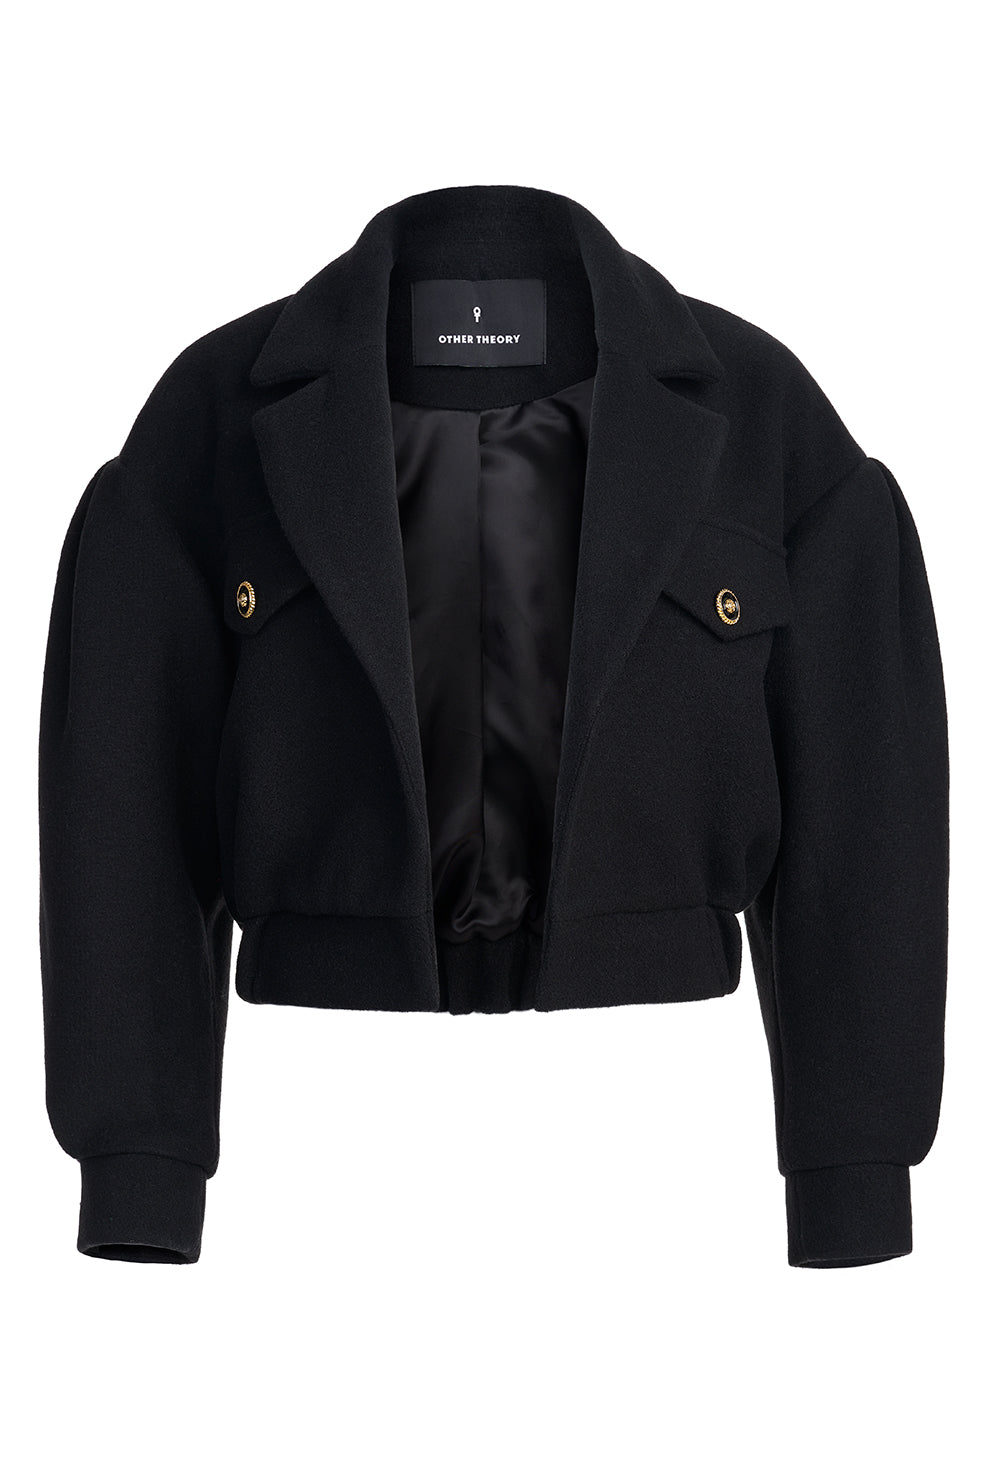 Taylor Black Puff Long Sleeve Blazer